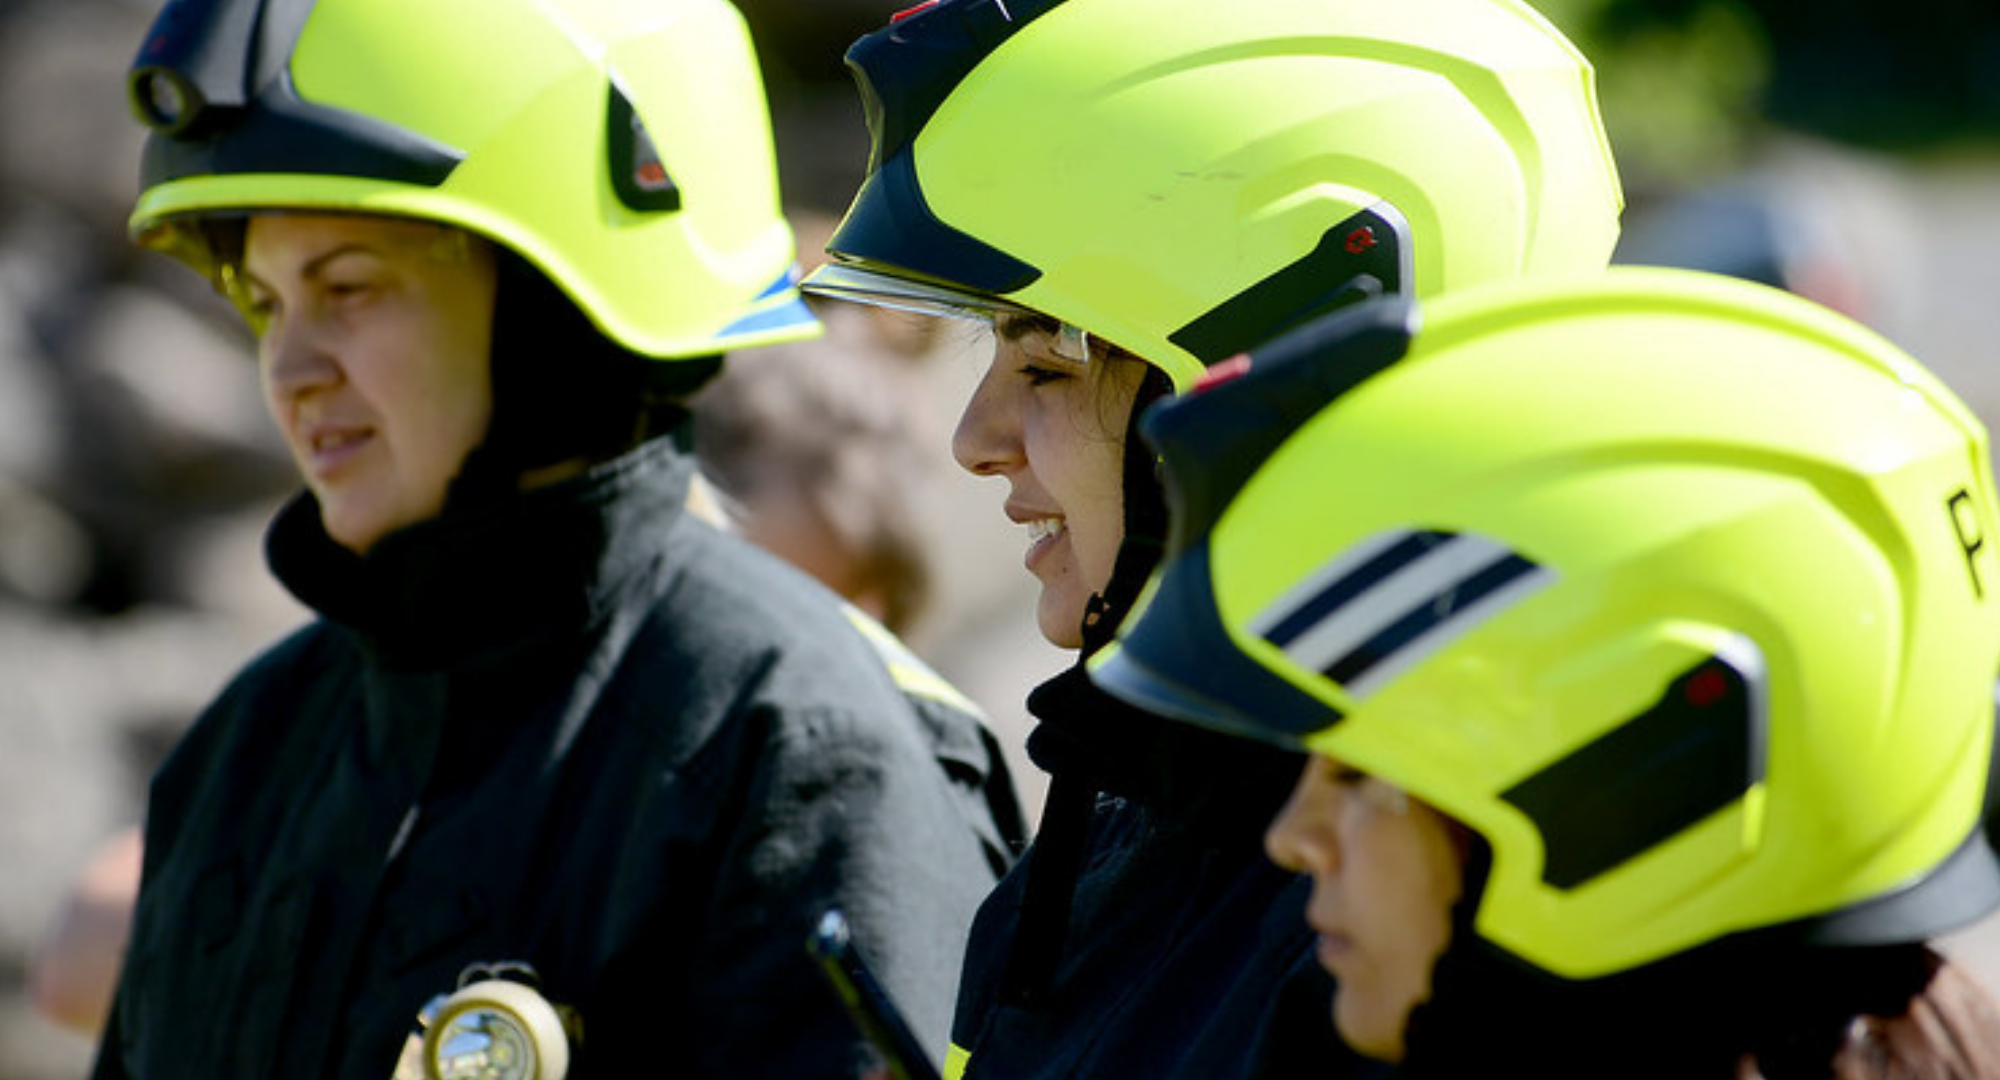 Three women firefighters standing together